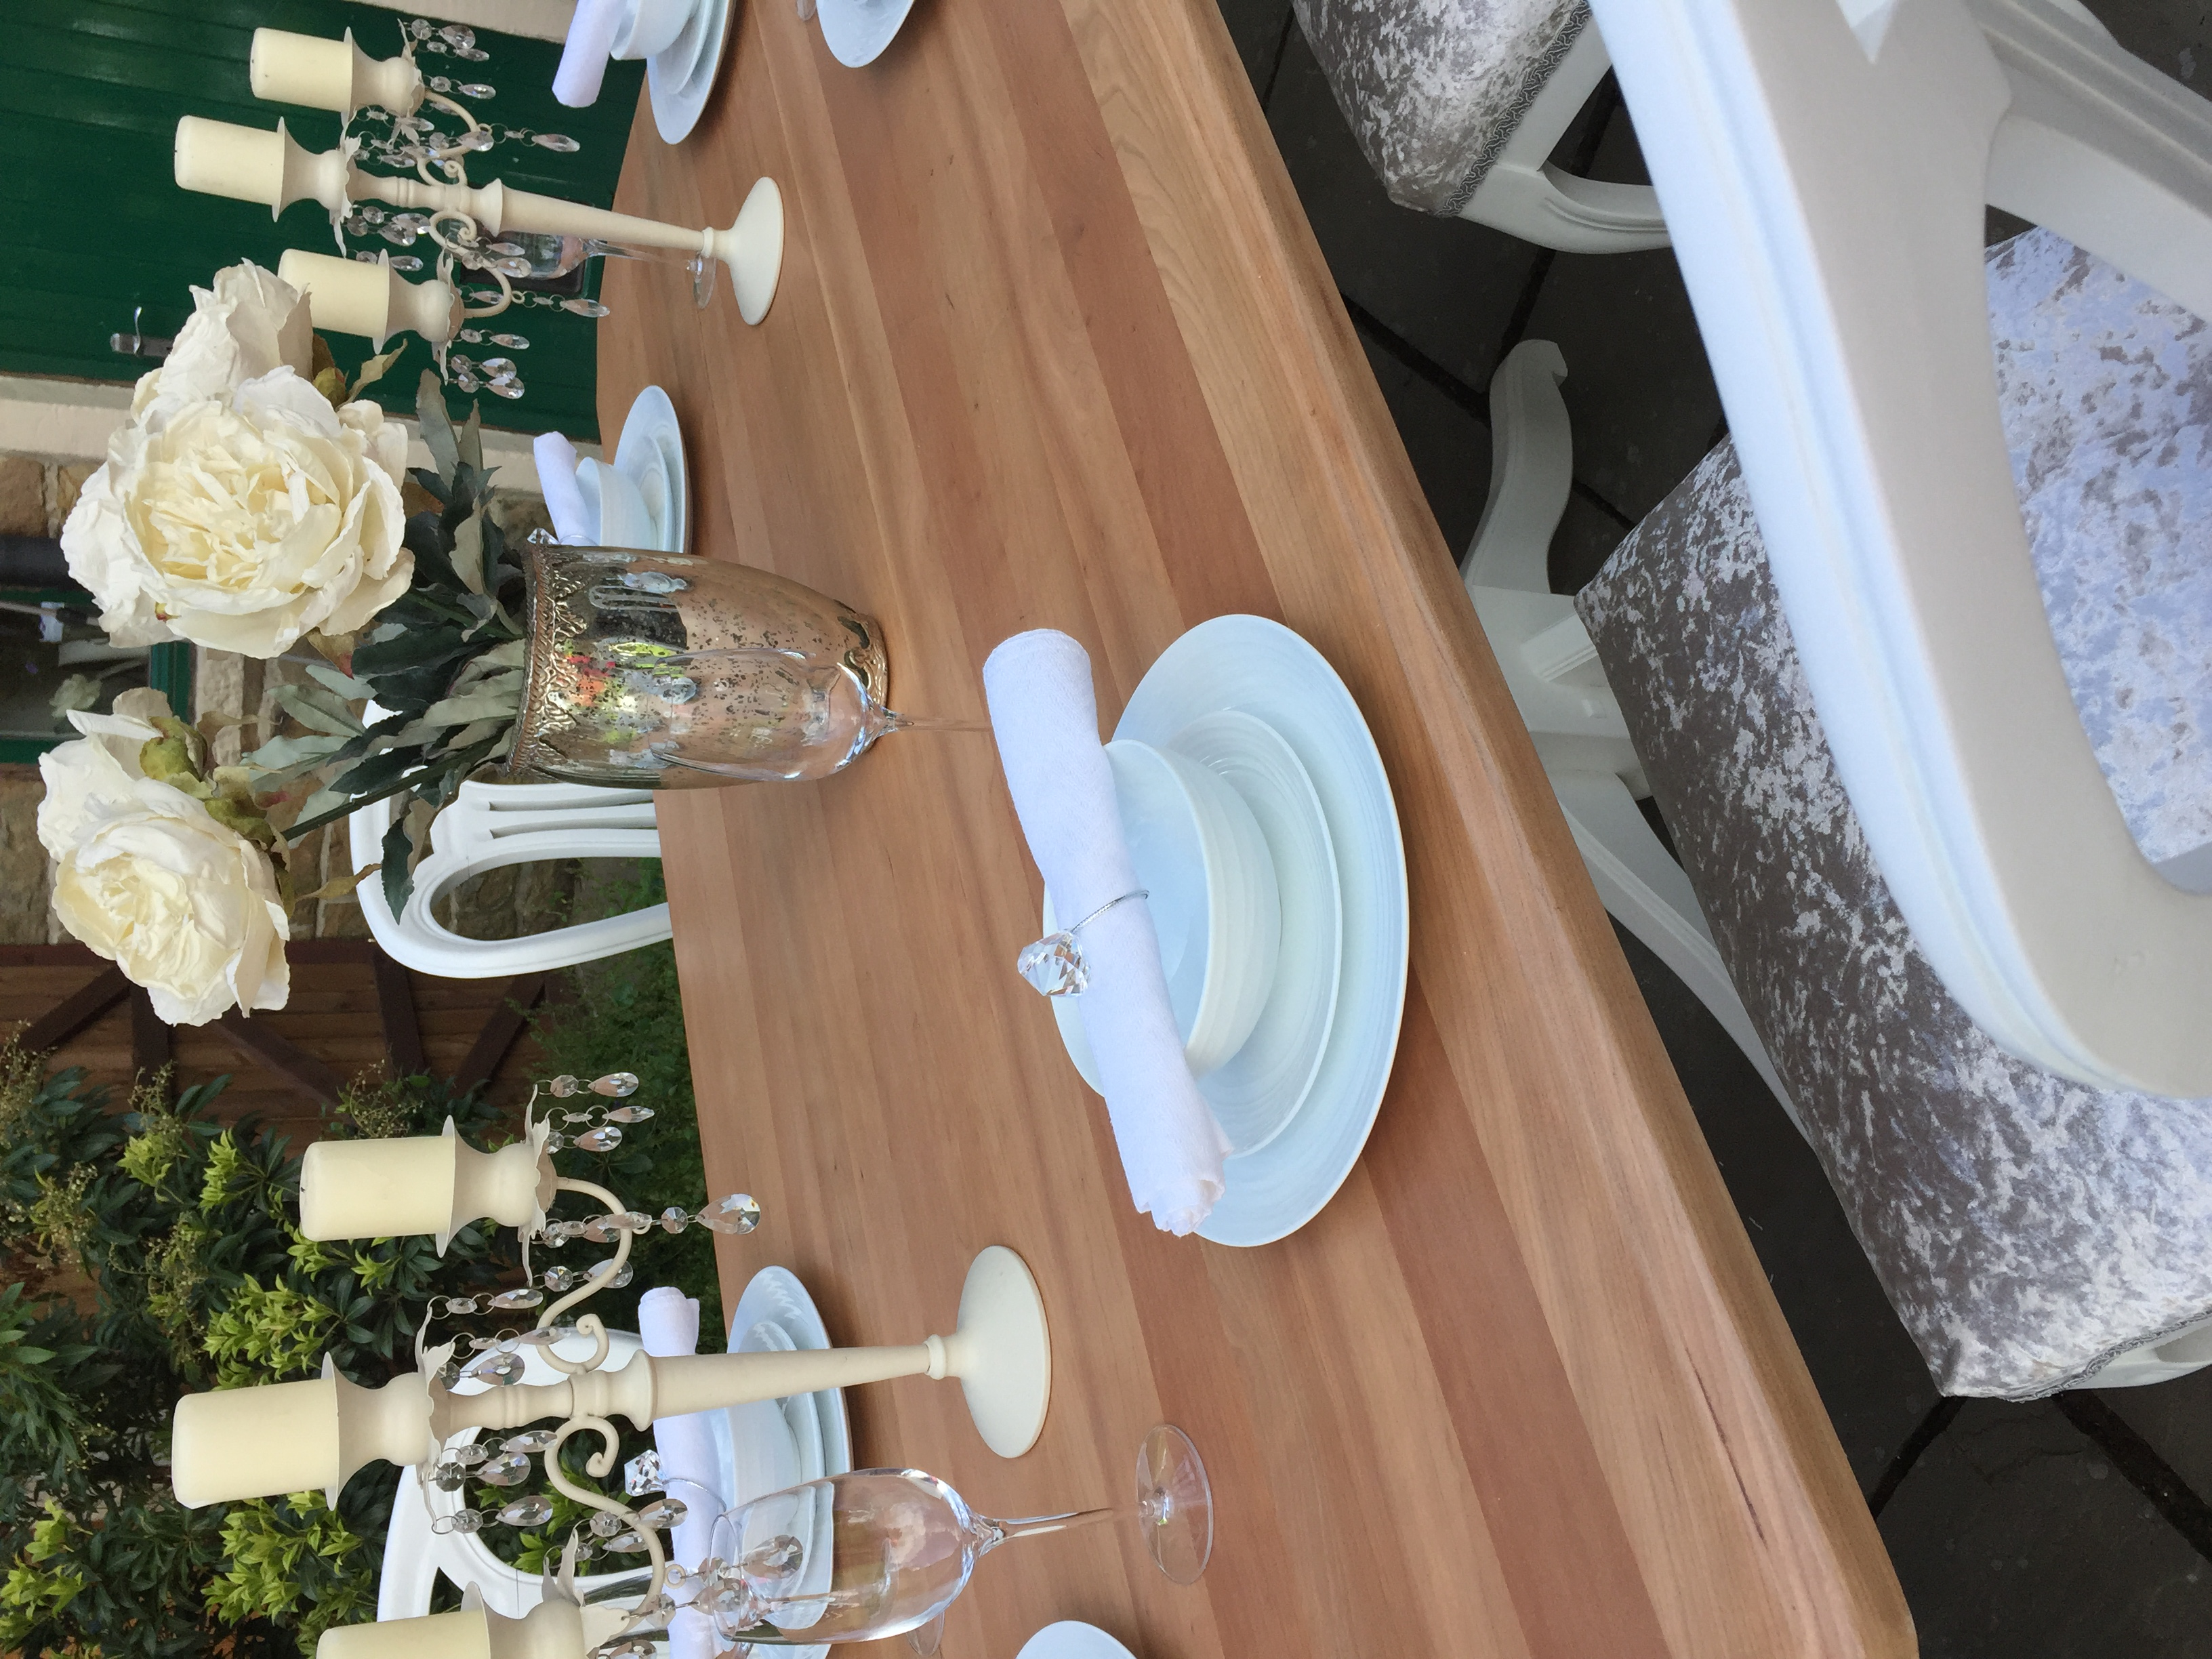 Immaculate Vintage Dining Table & 6 Chairs